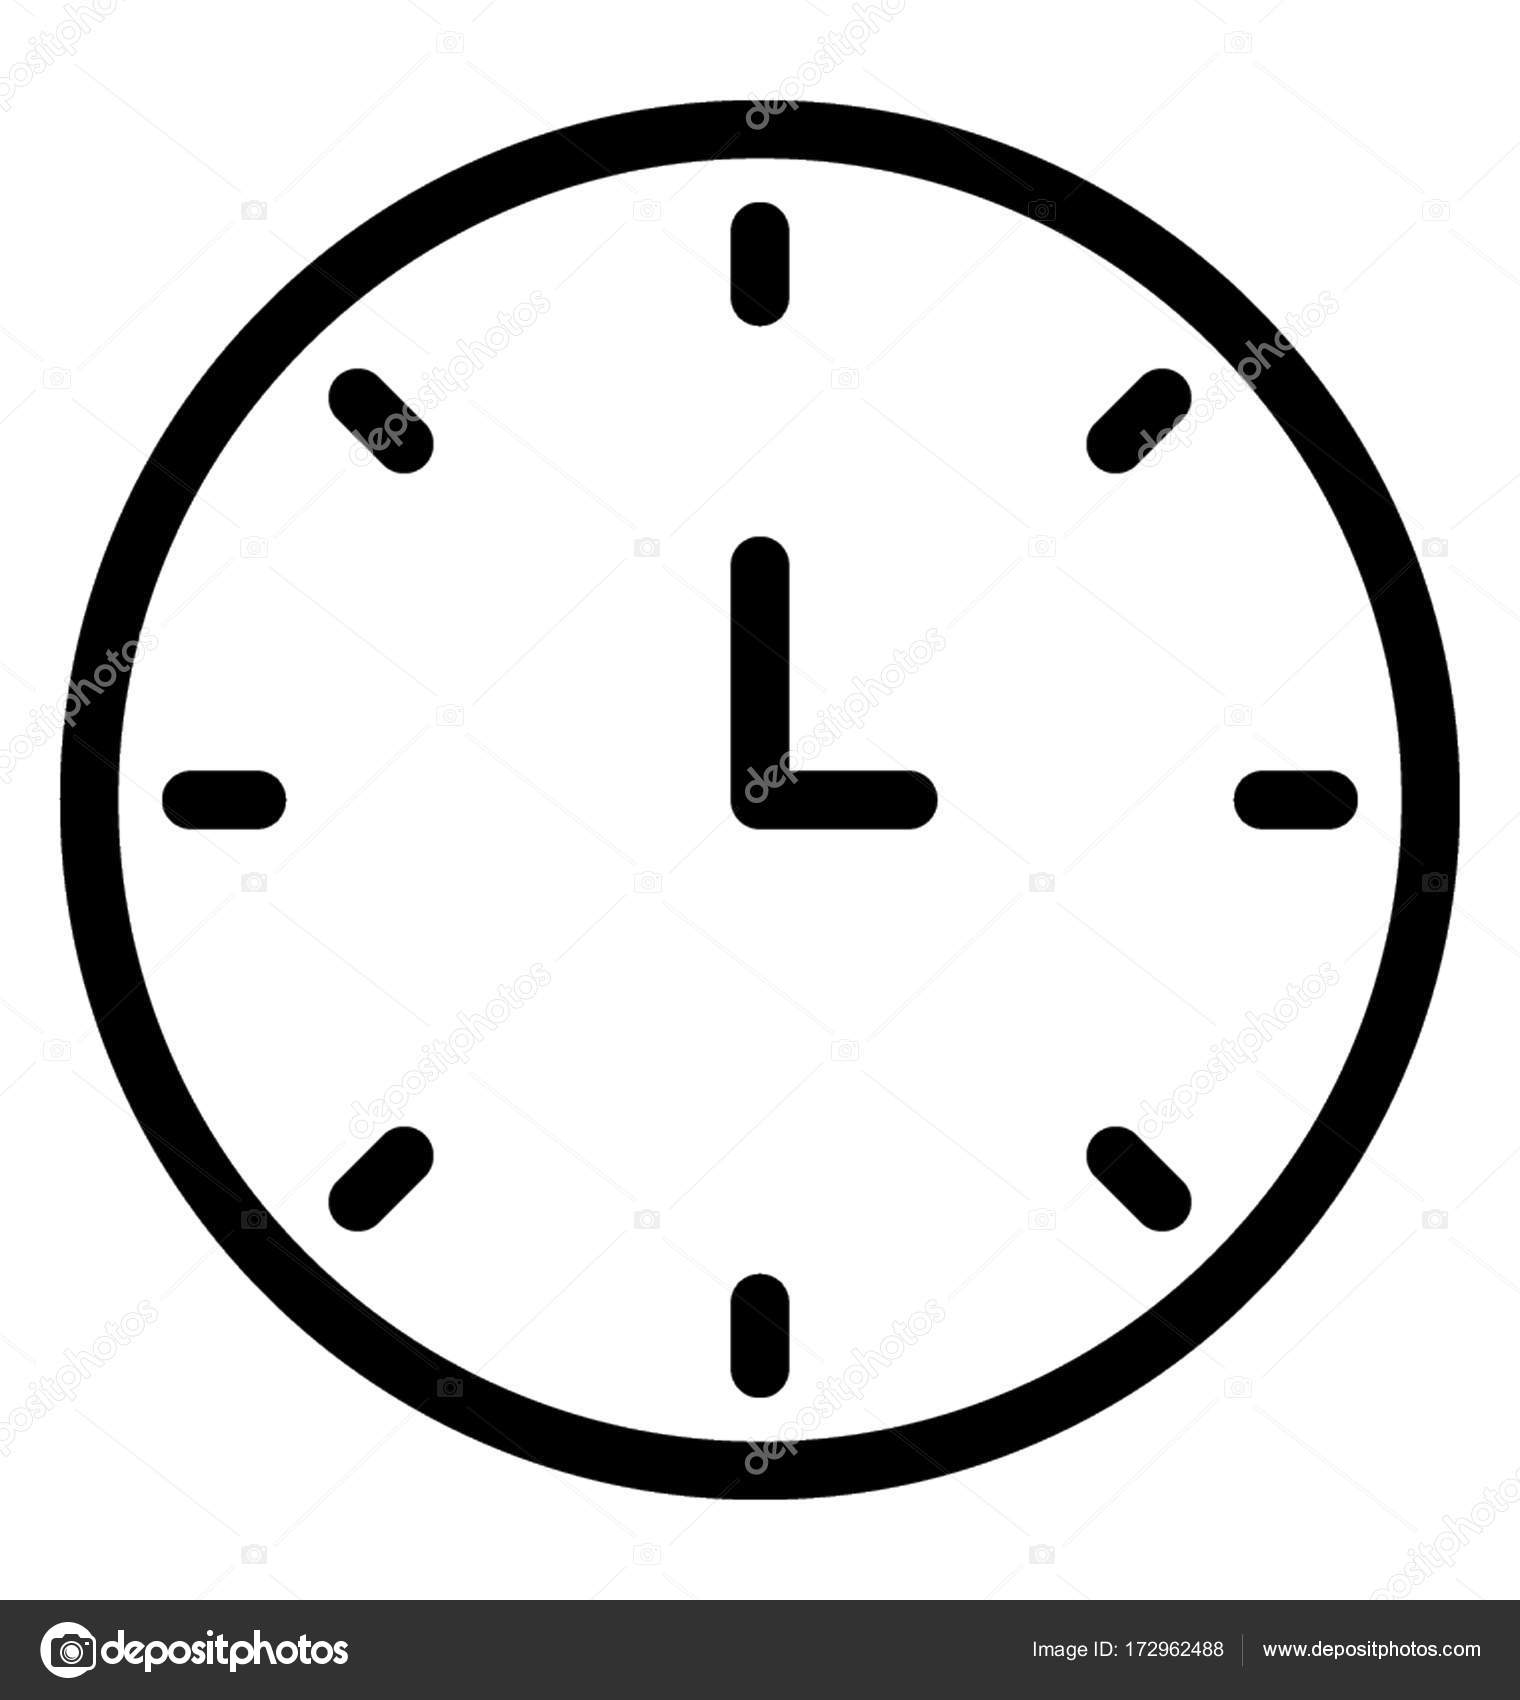 clock vector image Clock Vector Icon — Stock Vector © vectorsmarket #172962488